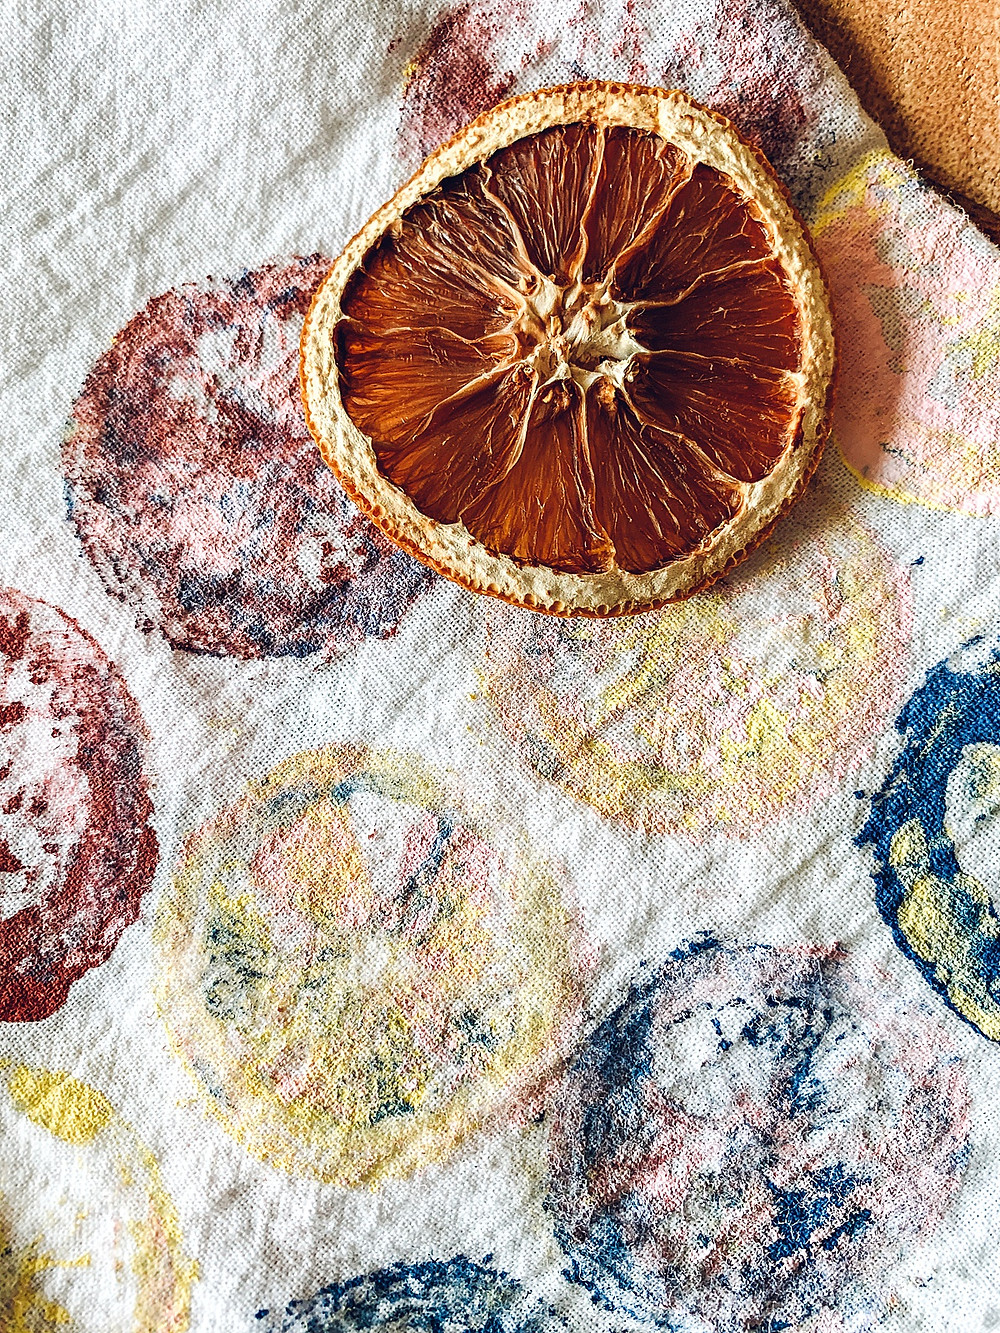 Summer diy, spring diy, hand towels, diy stamps, stamped hand towels, easy diy, budget friendly diy, women who diy, kitchen décor, easy home décor, the rural legend, zinnias, poppies, lego, dried oranges, diy with flowers, flour sack towels, diy towels, simple diy, easy diy décor, kitchen styling, family crafts, gift ideas, diy gift, mother's day gift, hostess gift, Christmas gift